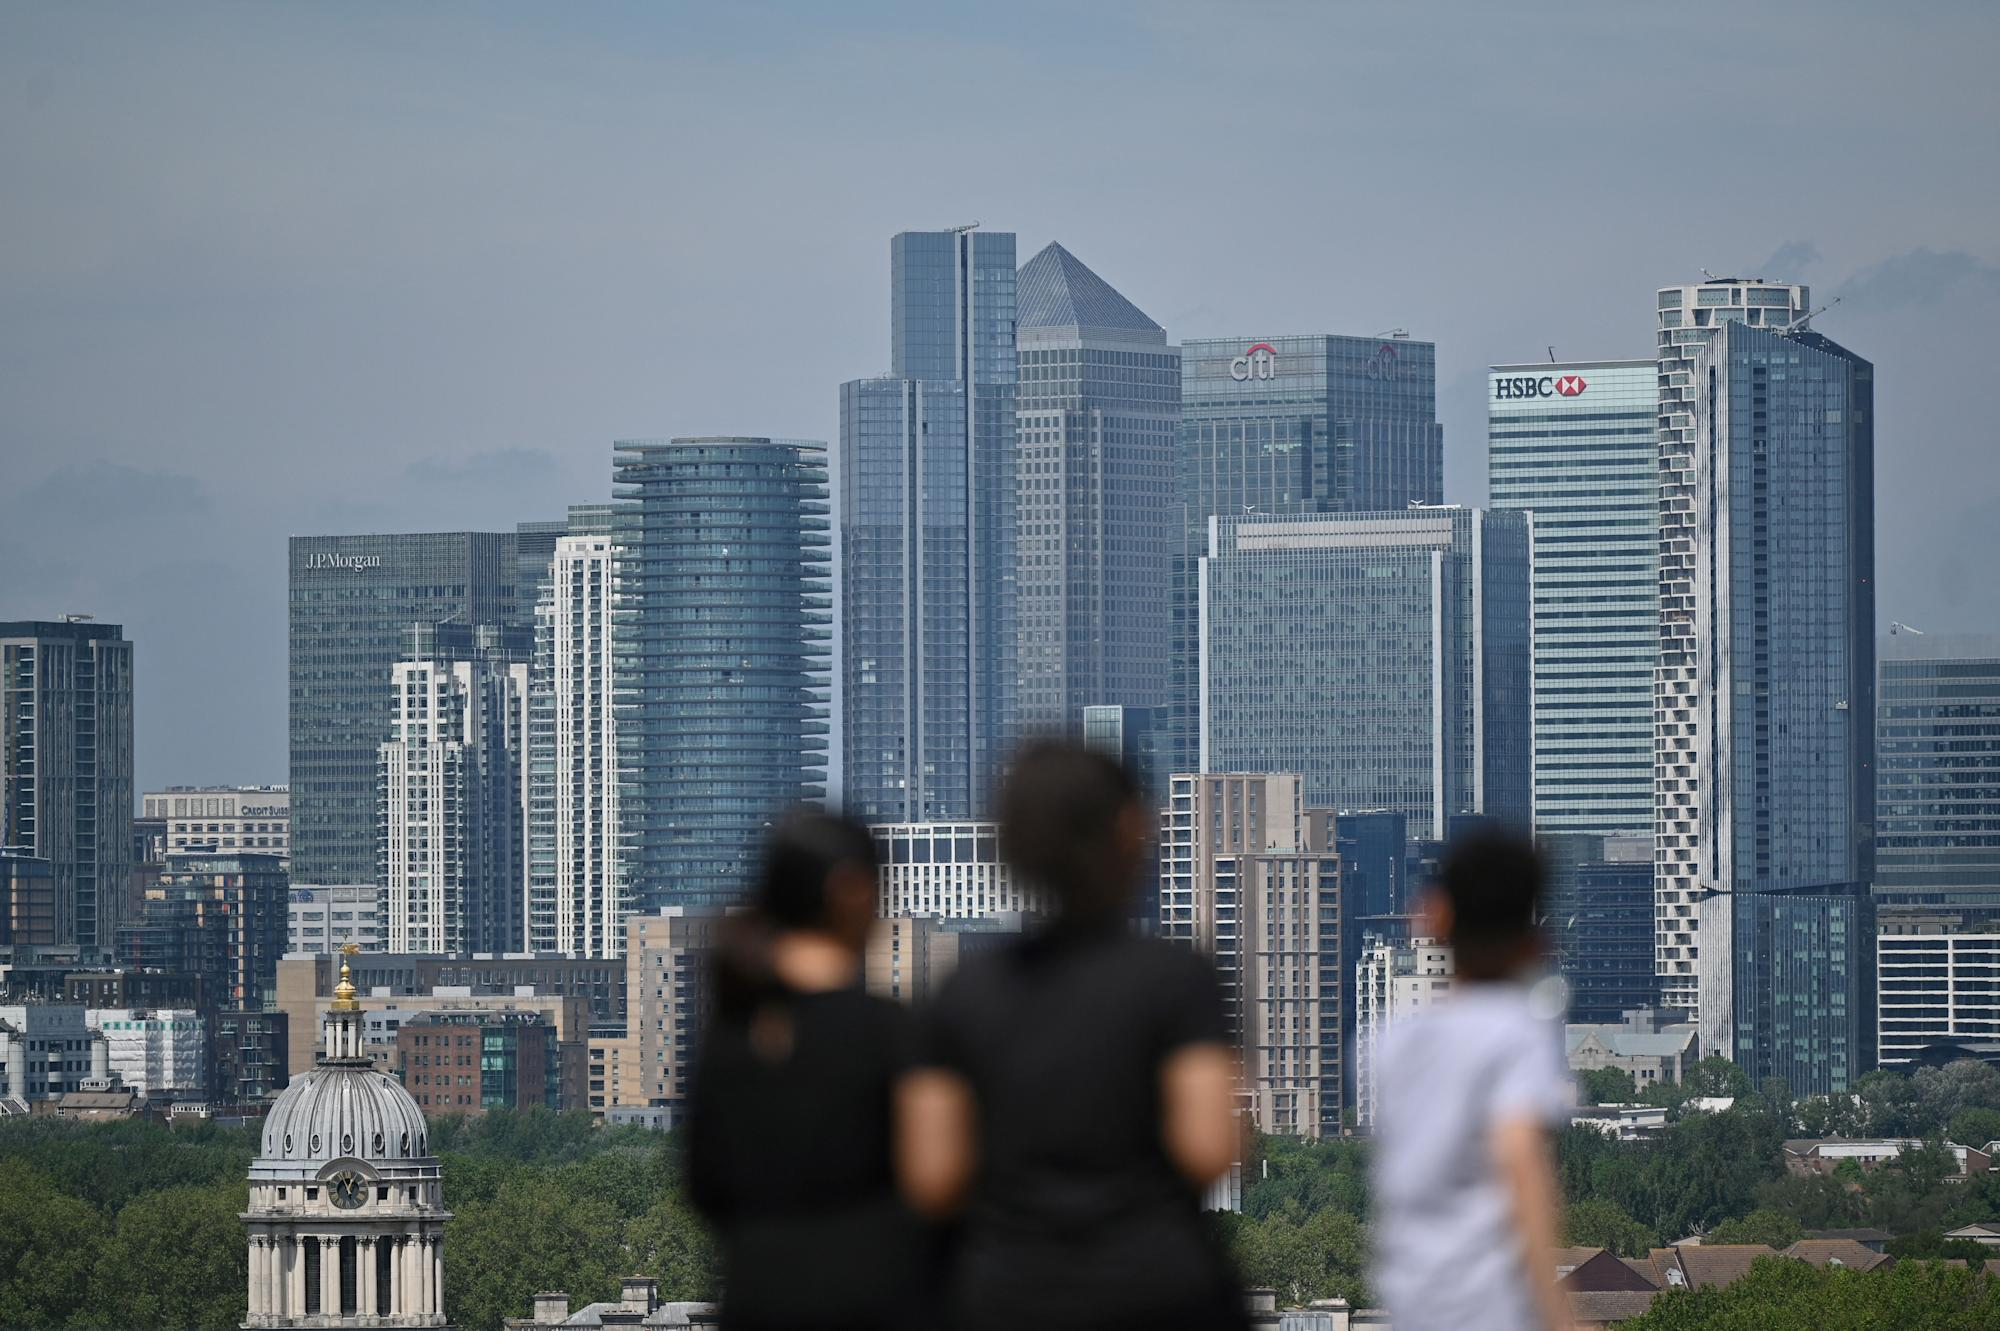 UK retains finance crown but France is catching up